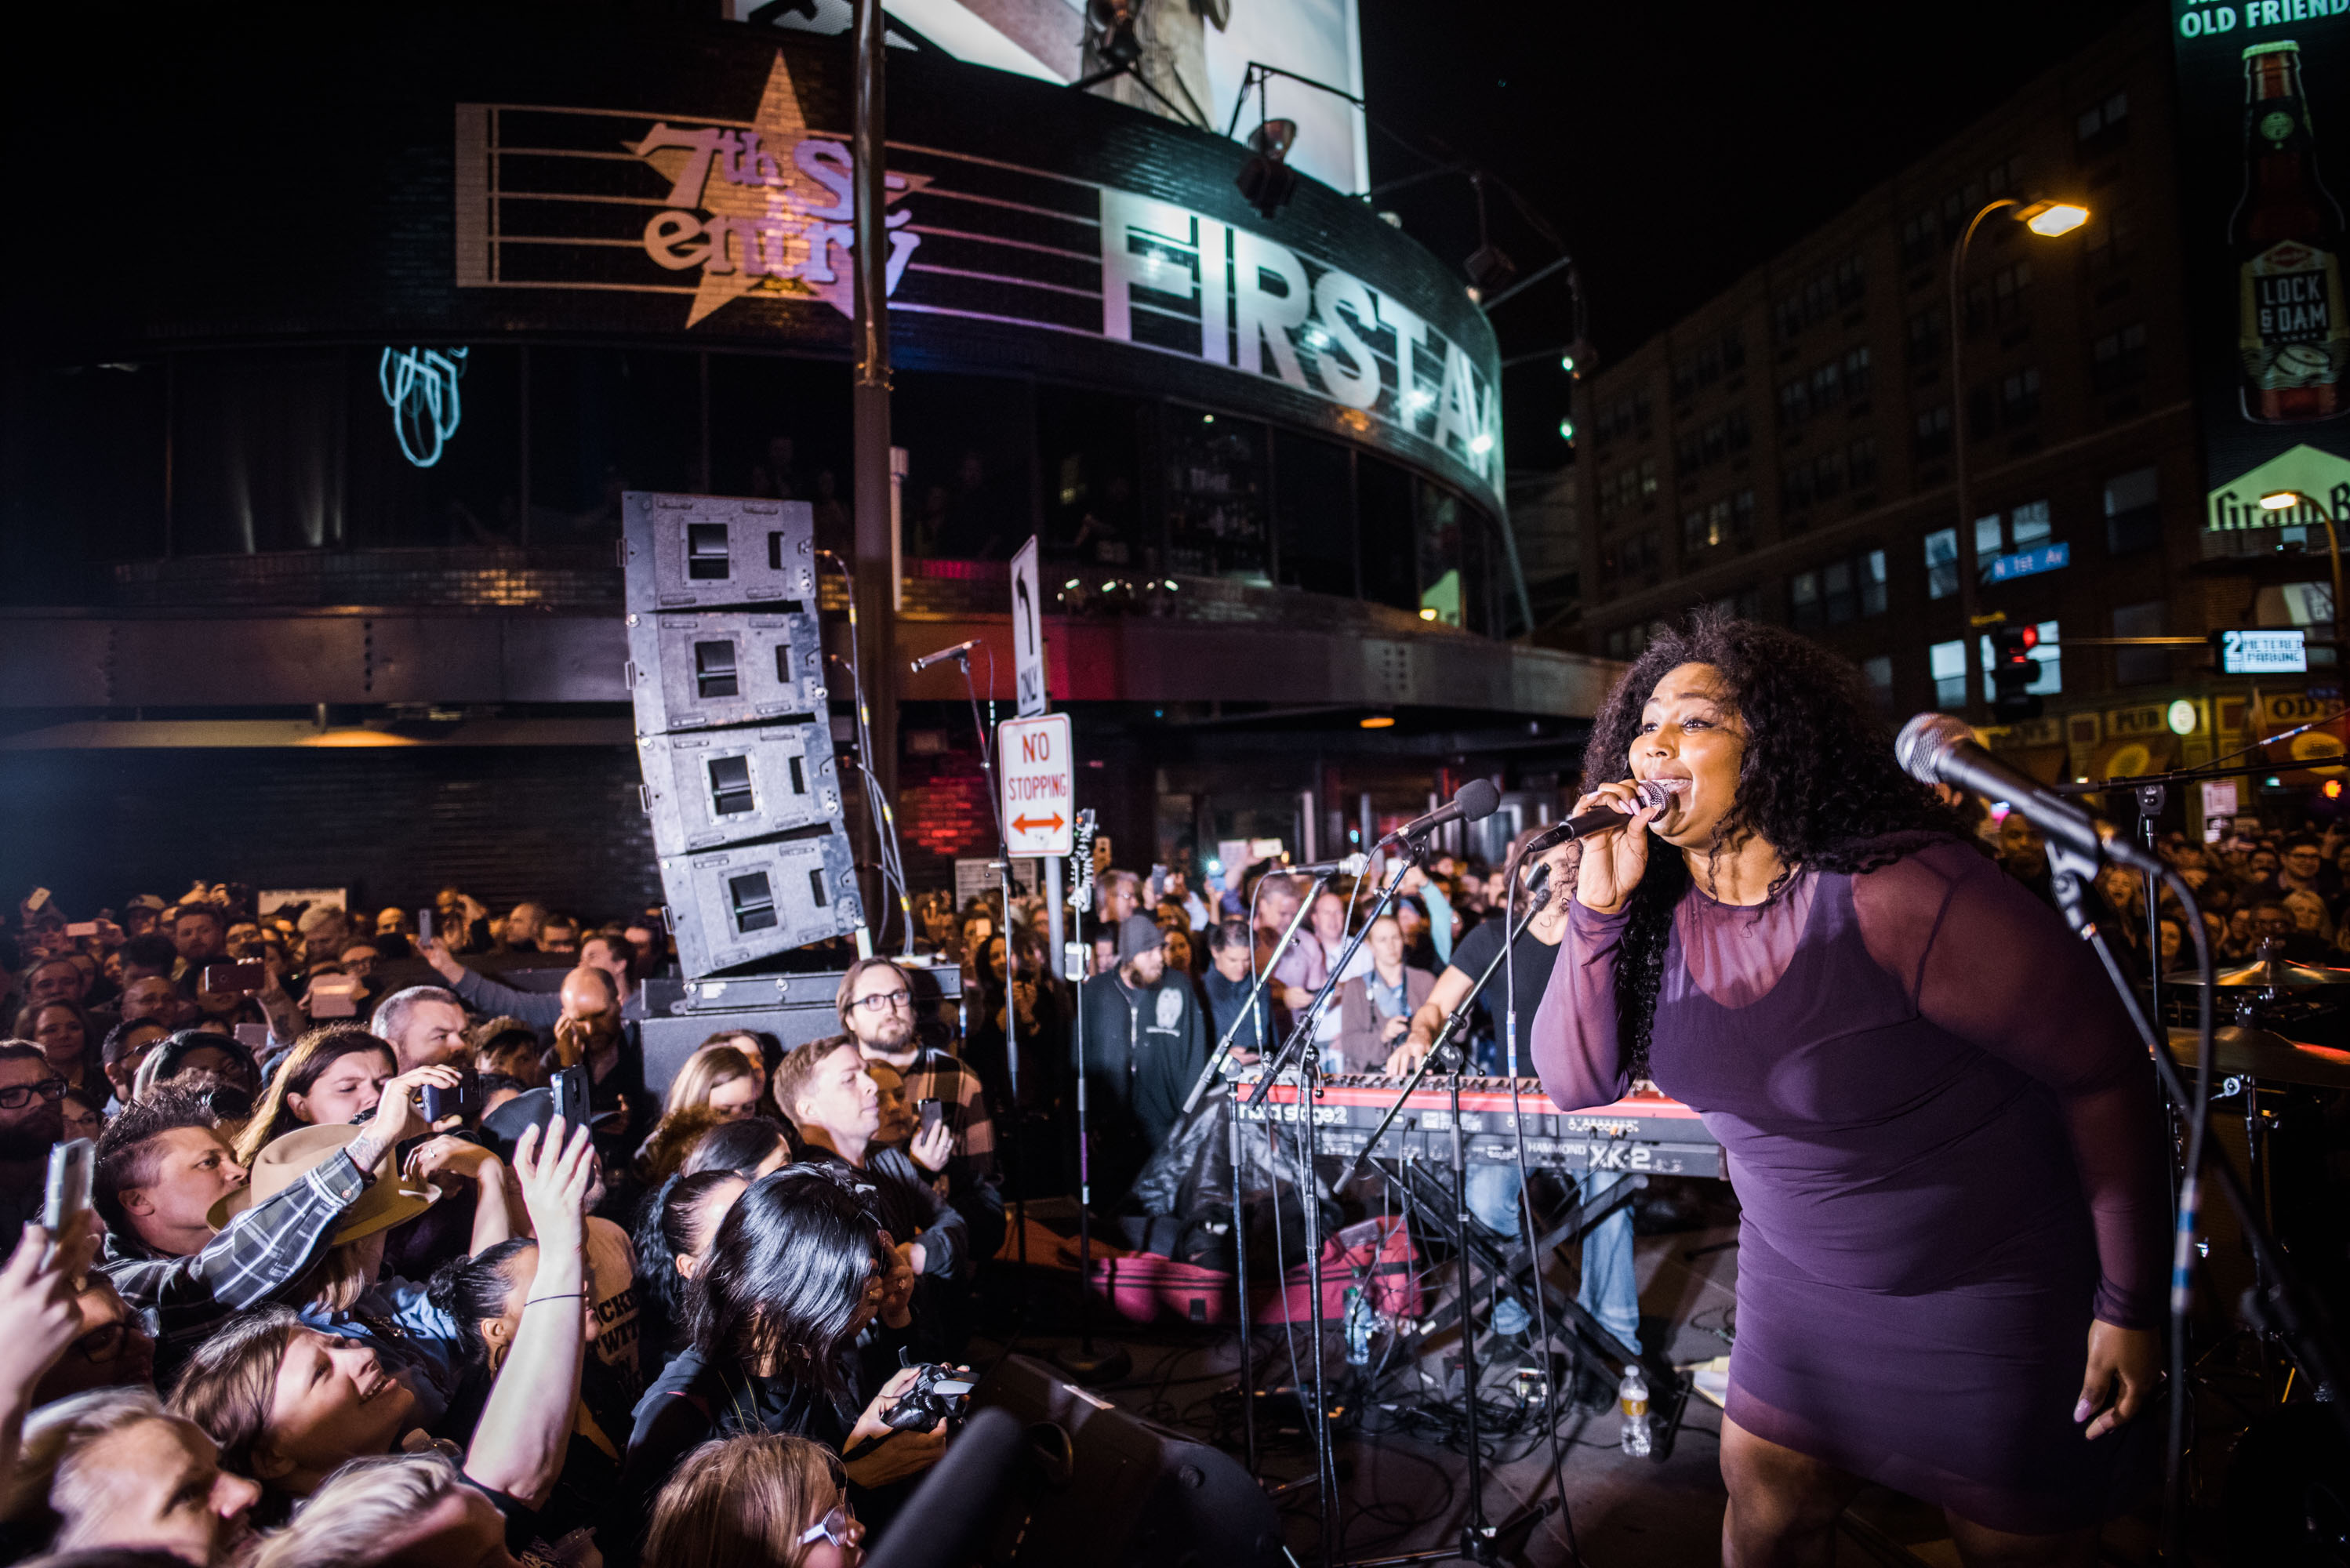 Lizzo flew home Thursday so she could perform during the block party to celebrate the life and music of Prince outside First Ave. nightclub in Minneapolis on April 21, 2016.